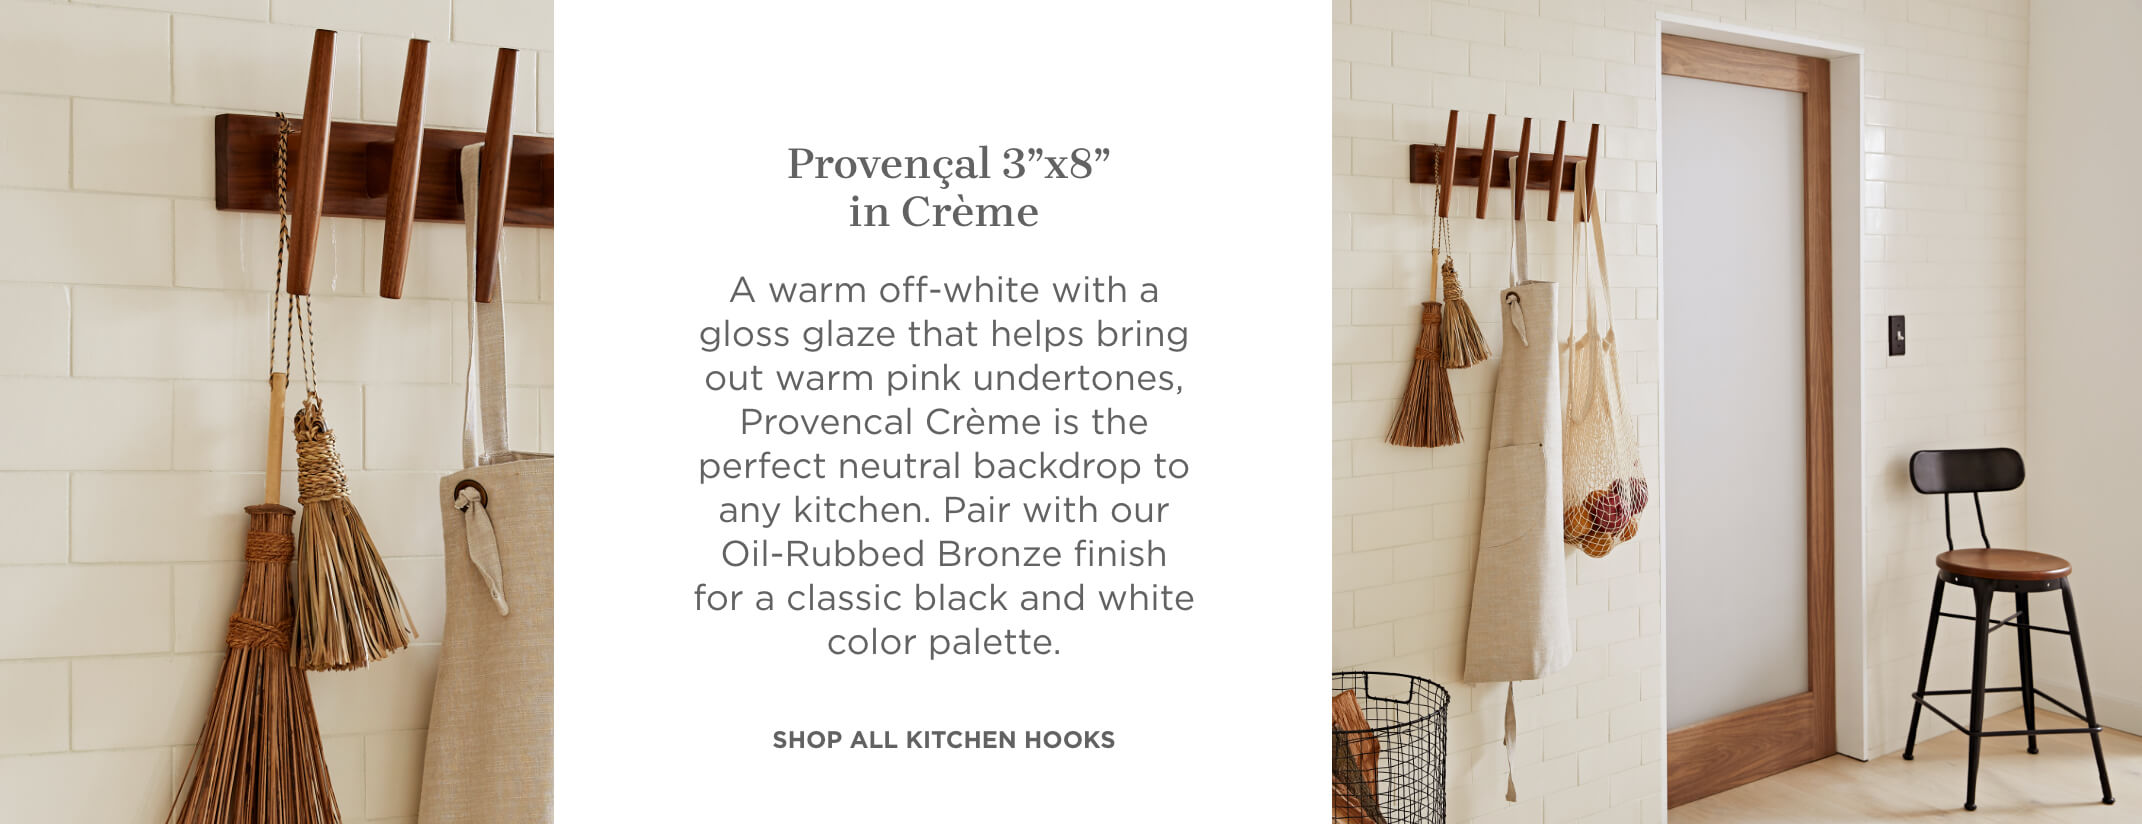 Shop All Kitchen Hooks